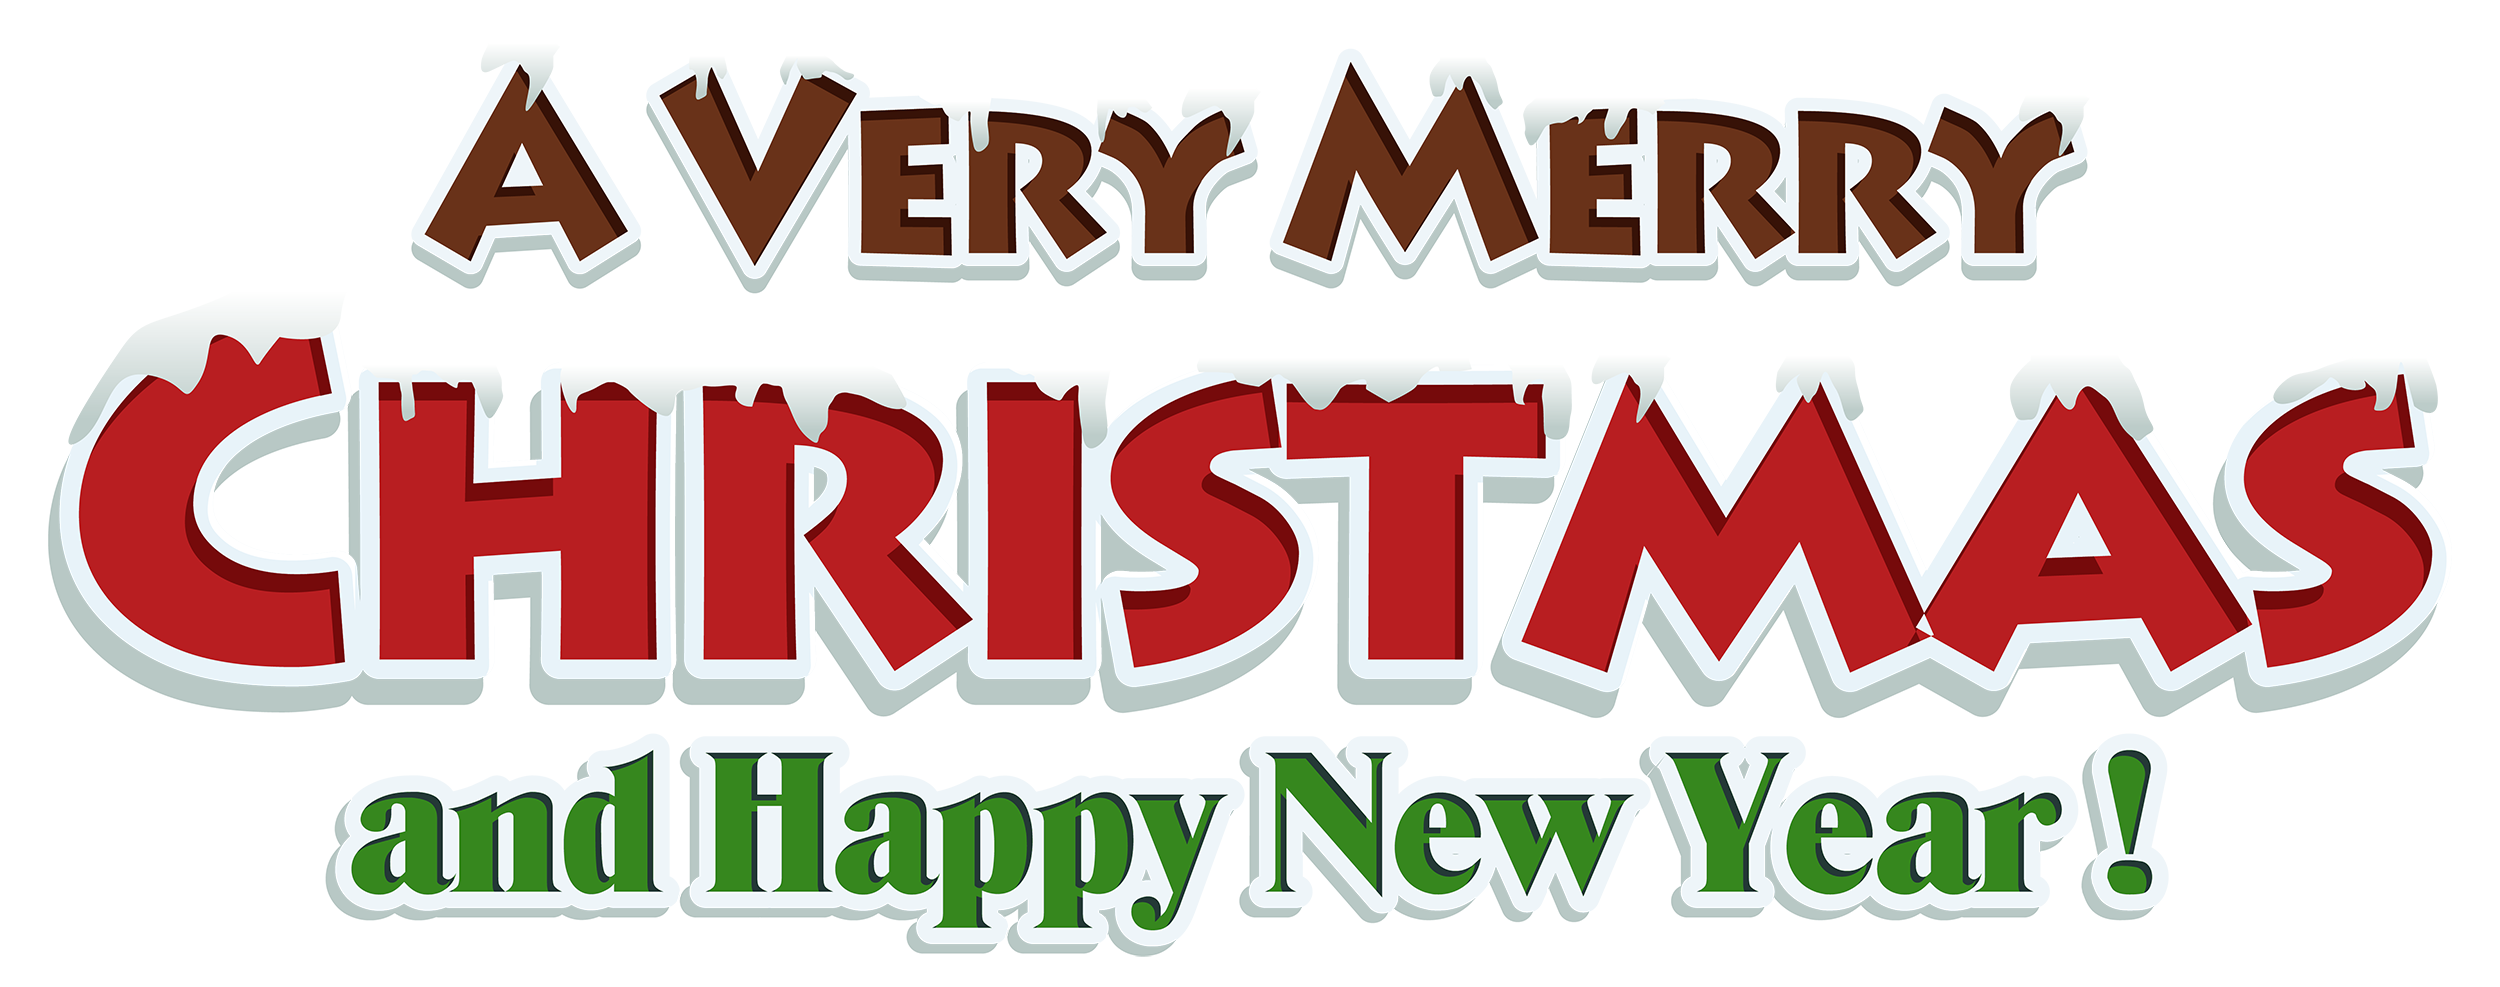 Png text new 2016. Merry christmas transparent images